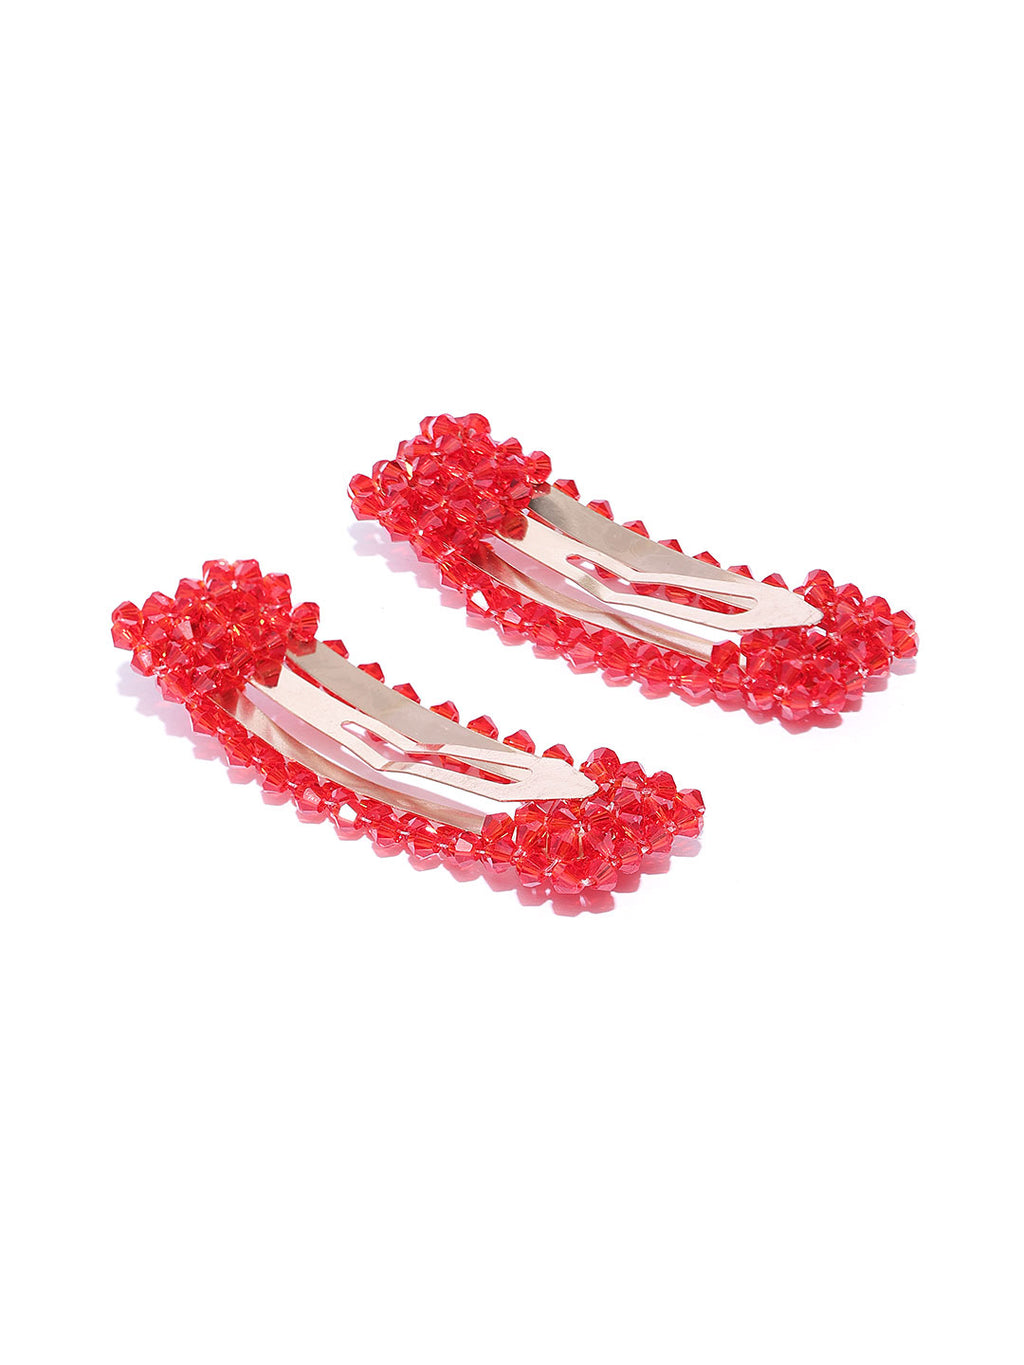 Blueberry set of 2 red crystal beads detailing hairpins